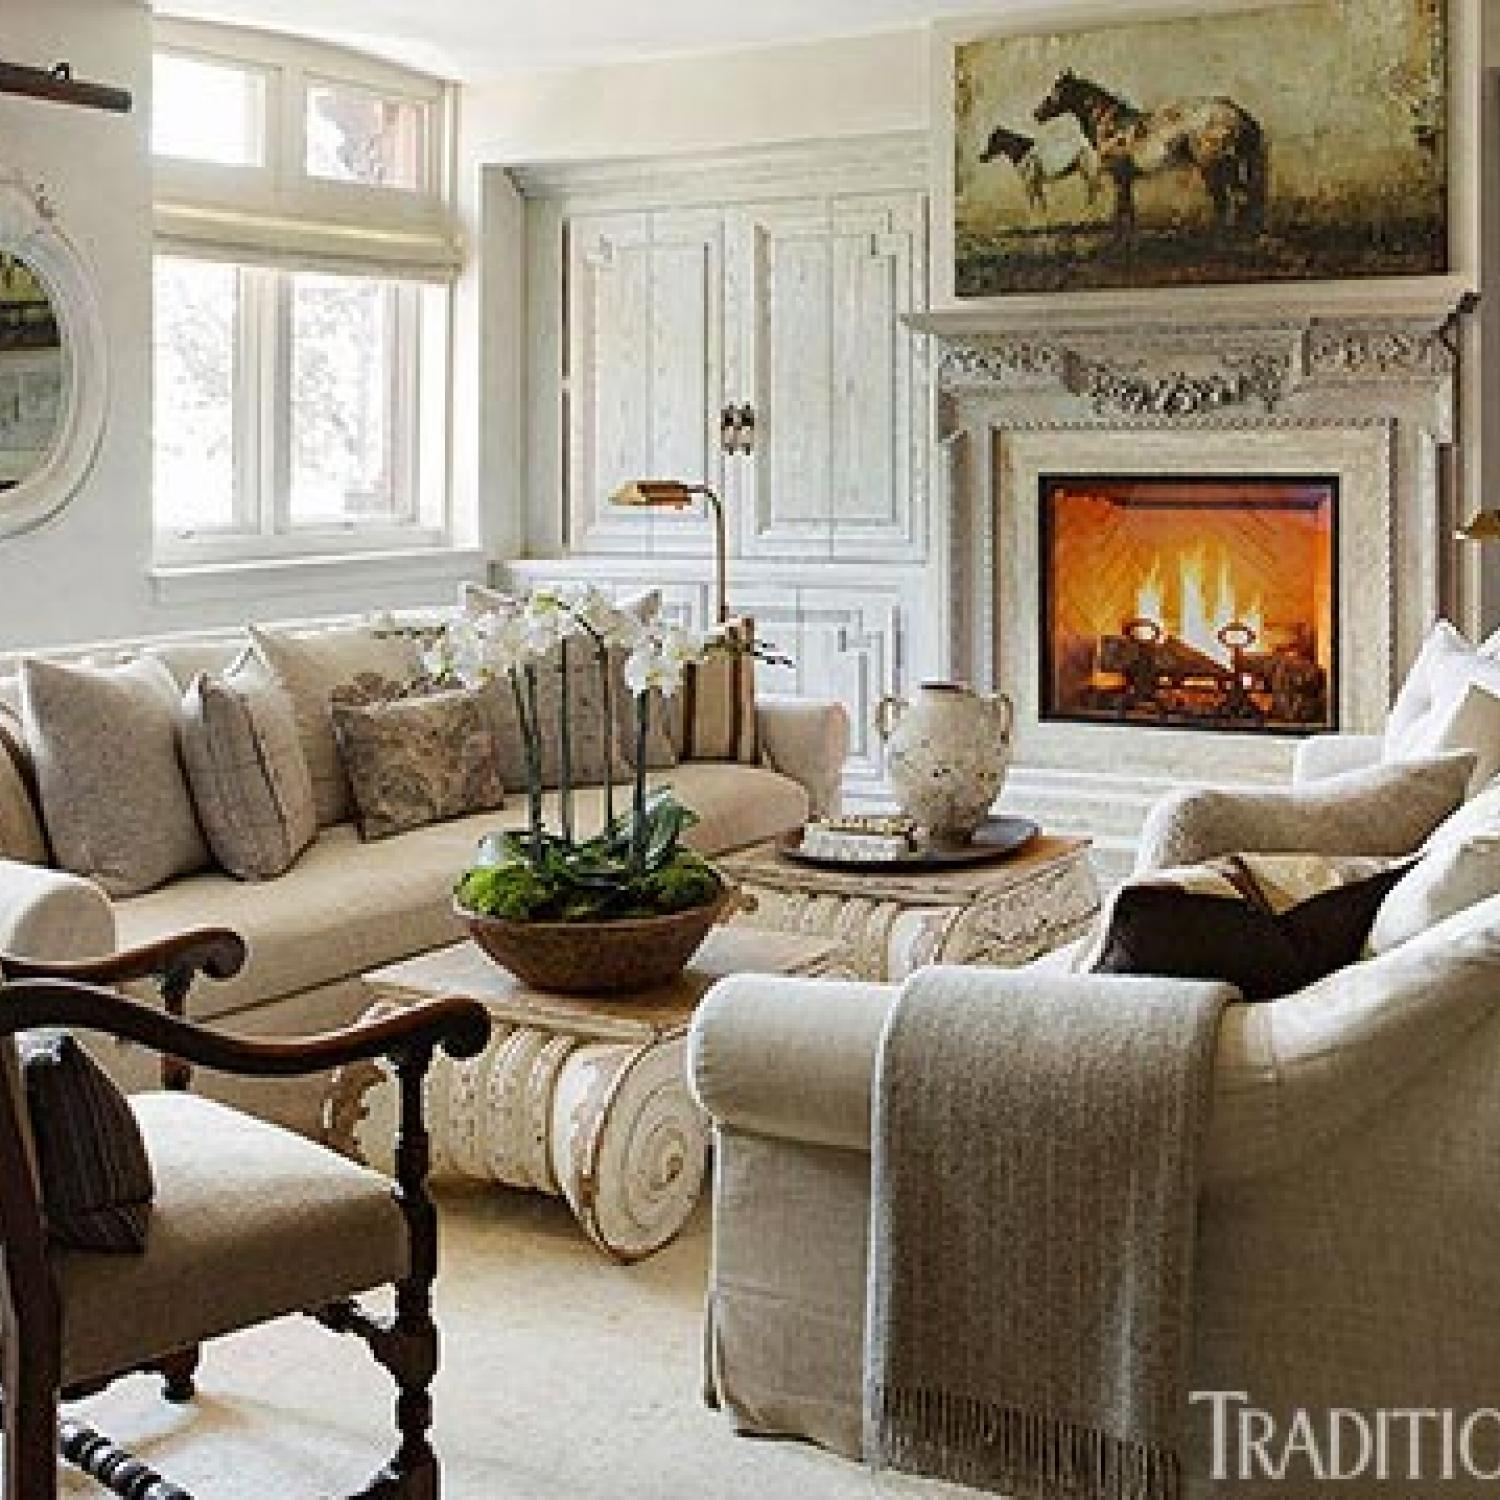 Top Ten Favorite Coffee Tables - Restoration hardware coffee table look alike